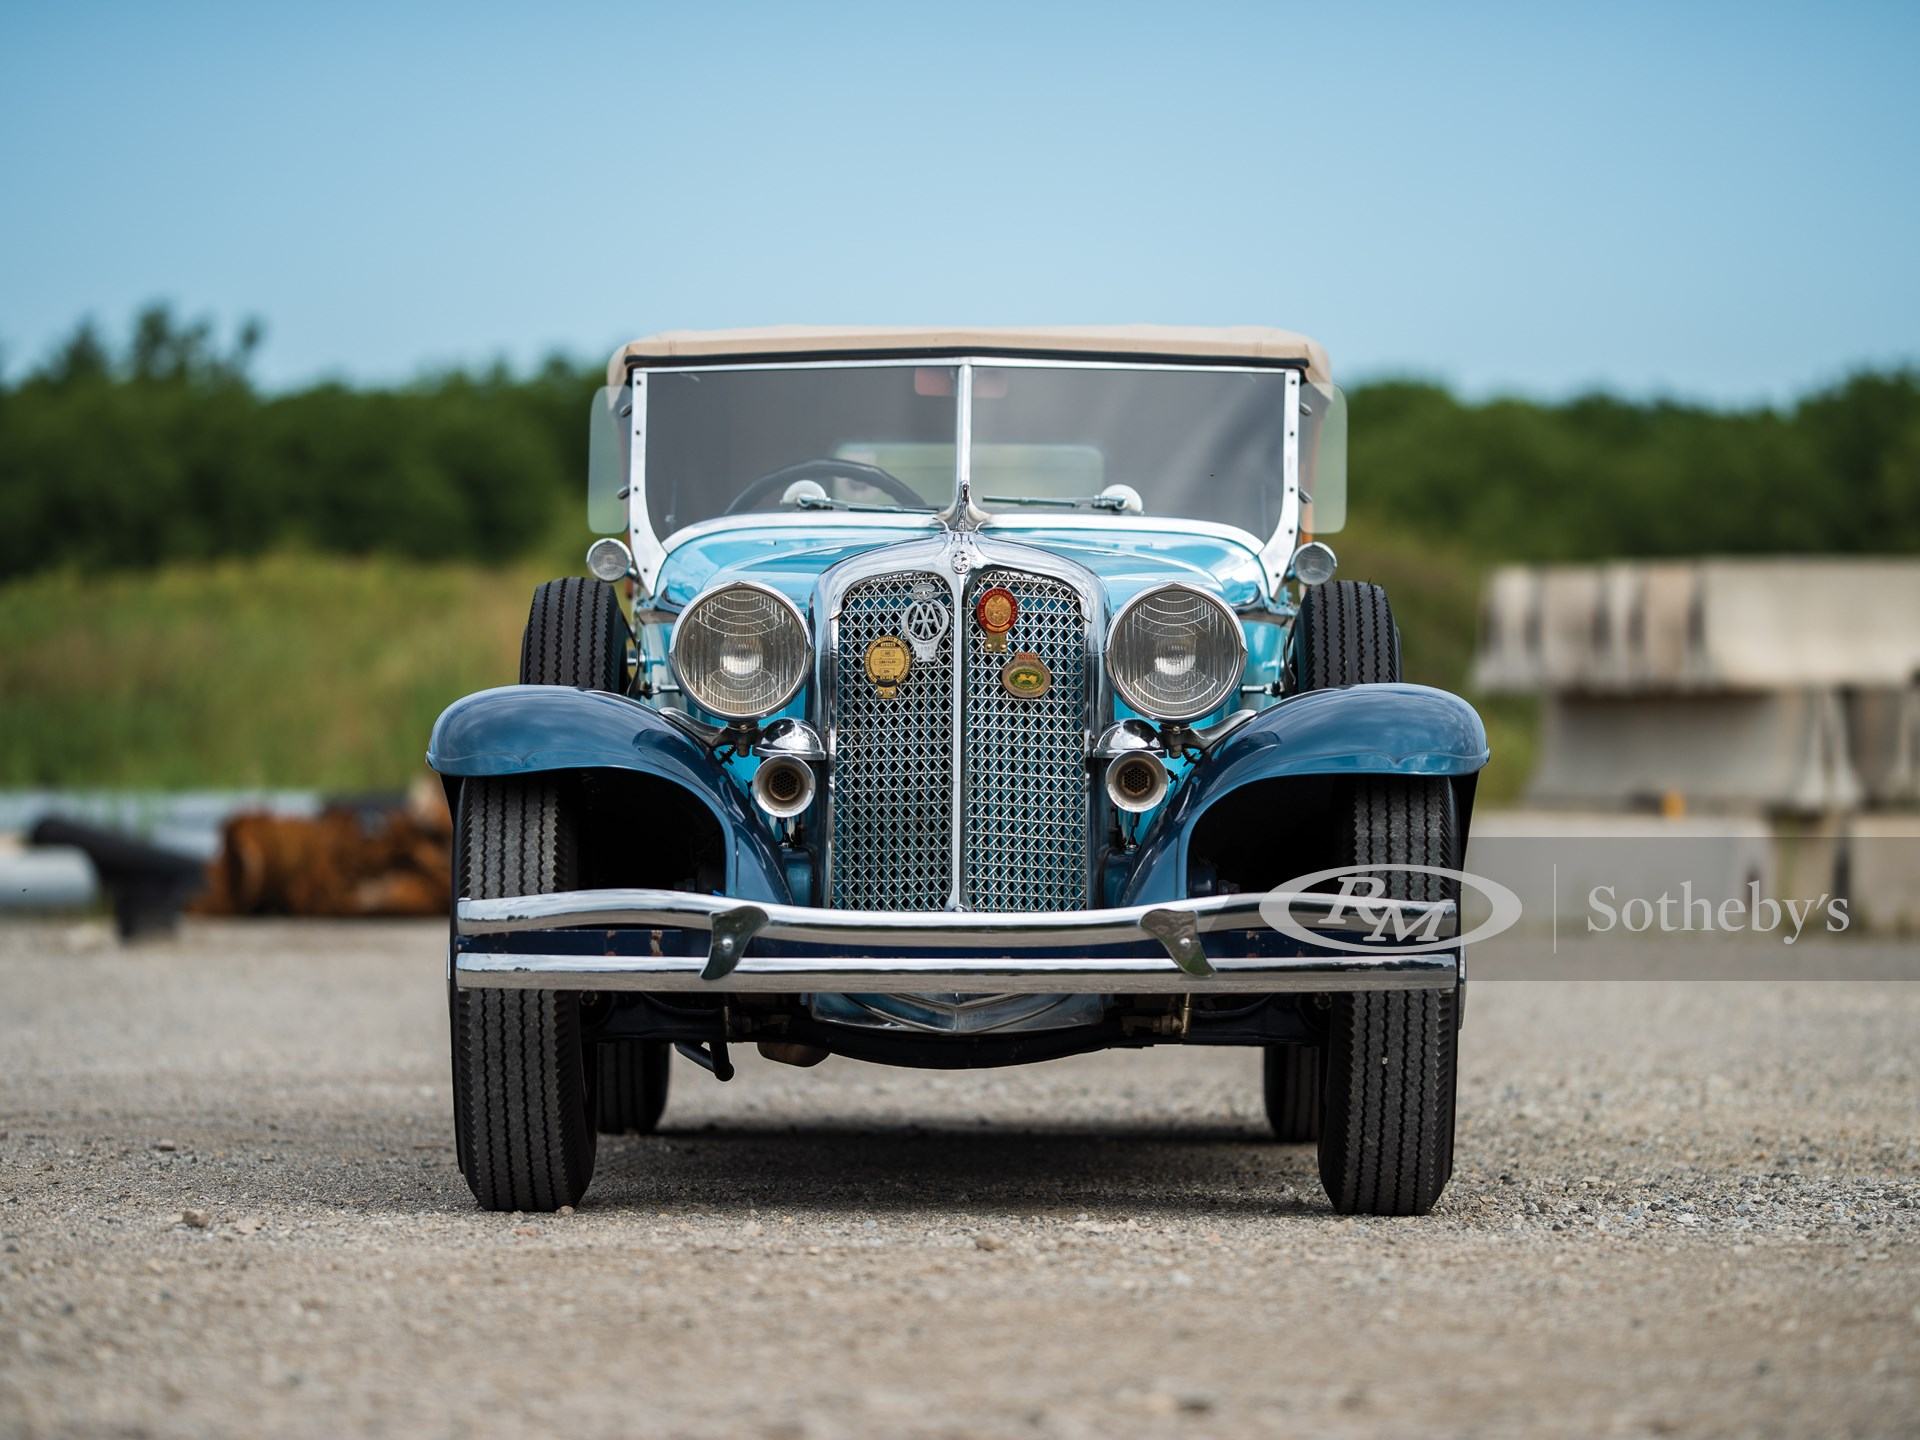 1931 Chrysler CG Imperial Dual-Cowl Phaeton in the style of LeBaron -